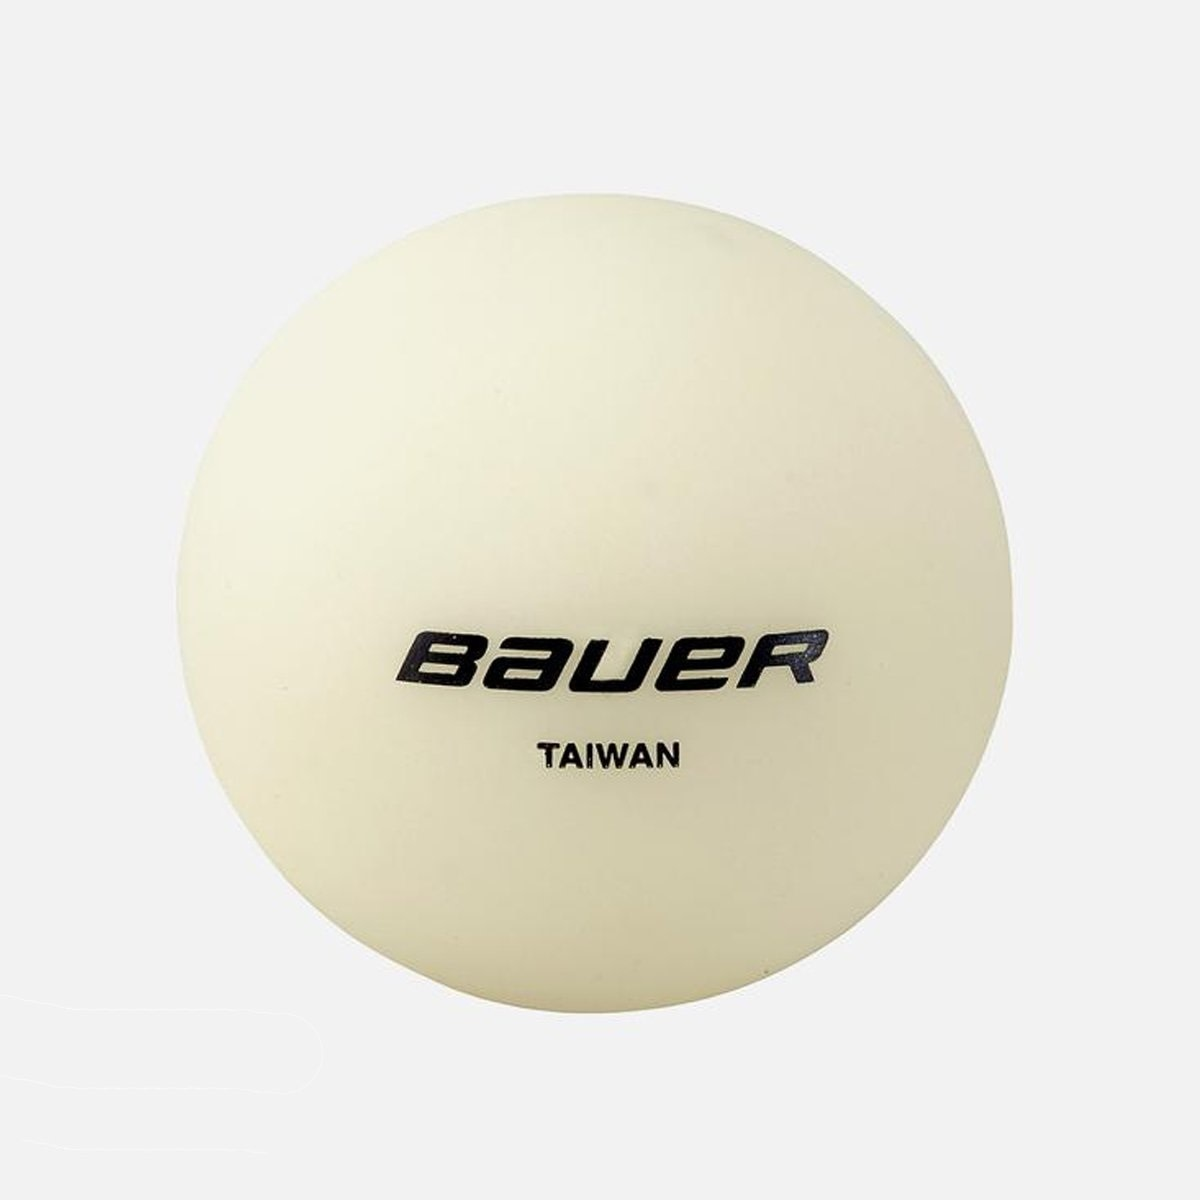 Bauer BAUER GLOW IN THE DARK HOCKEY BALL 4 PACK